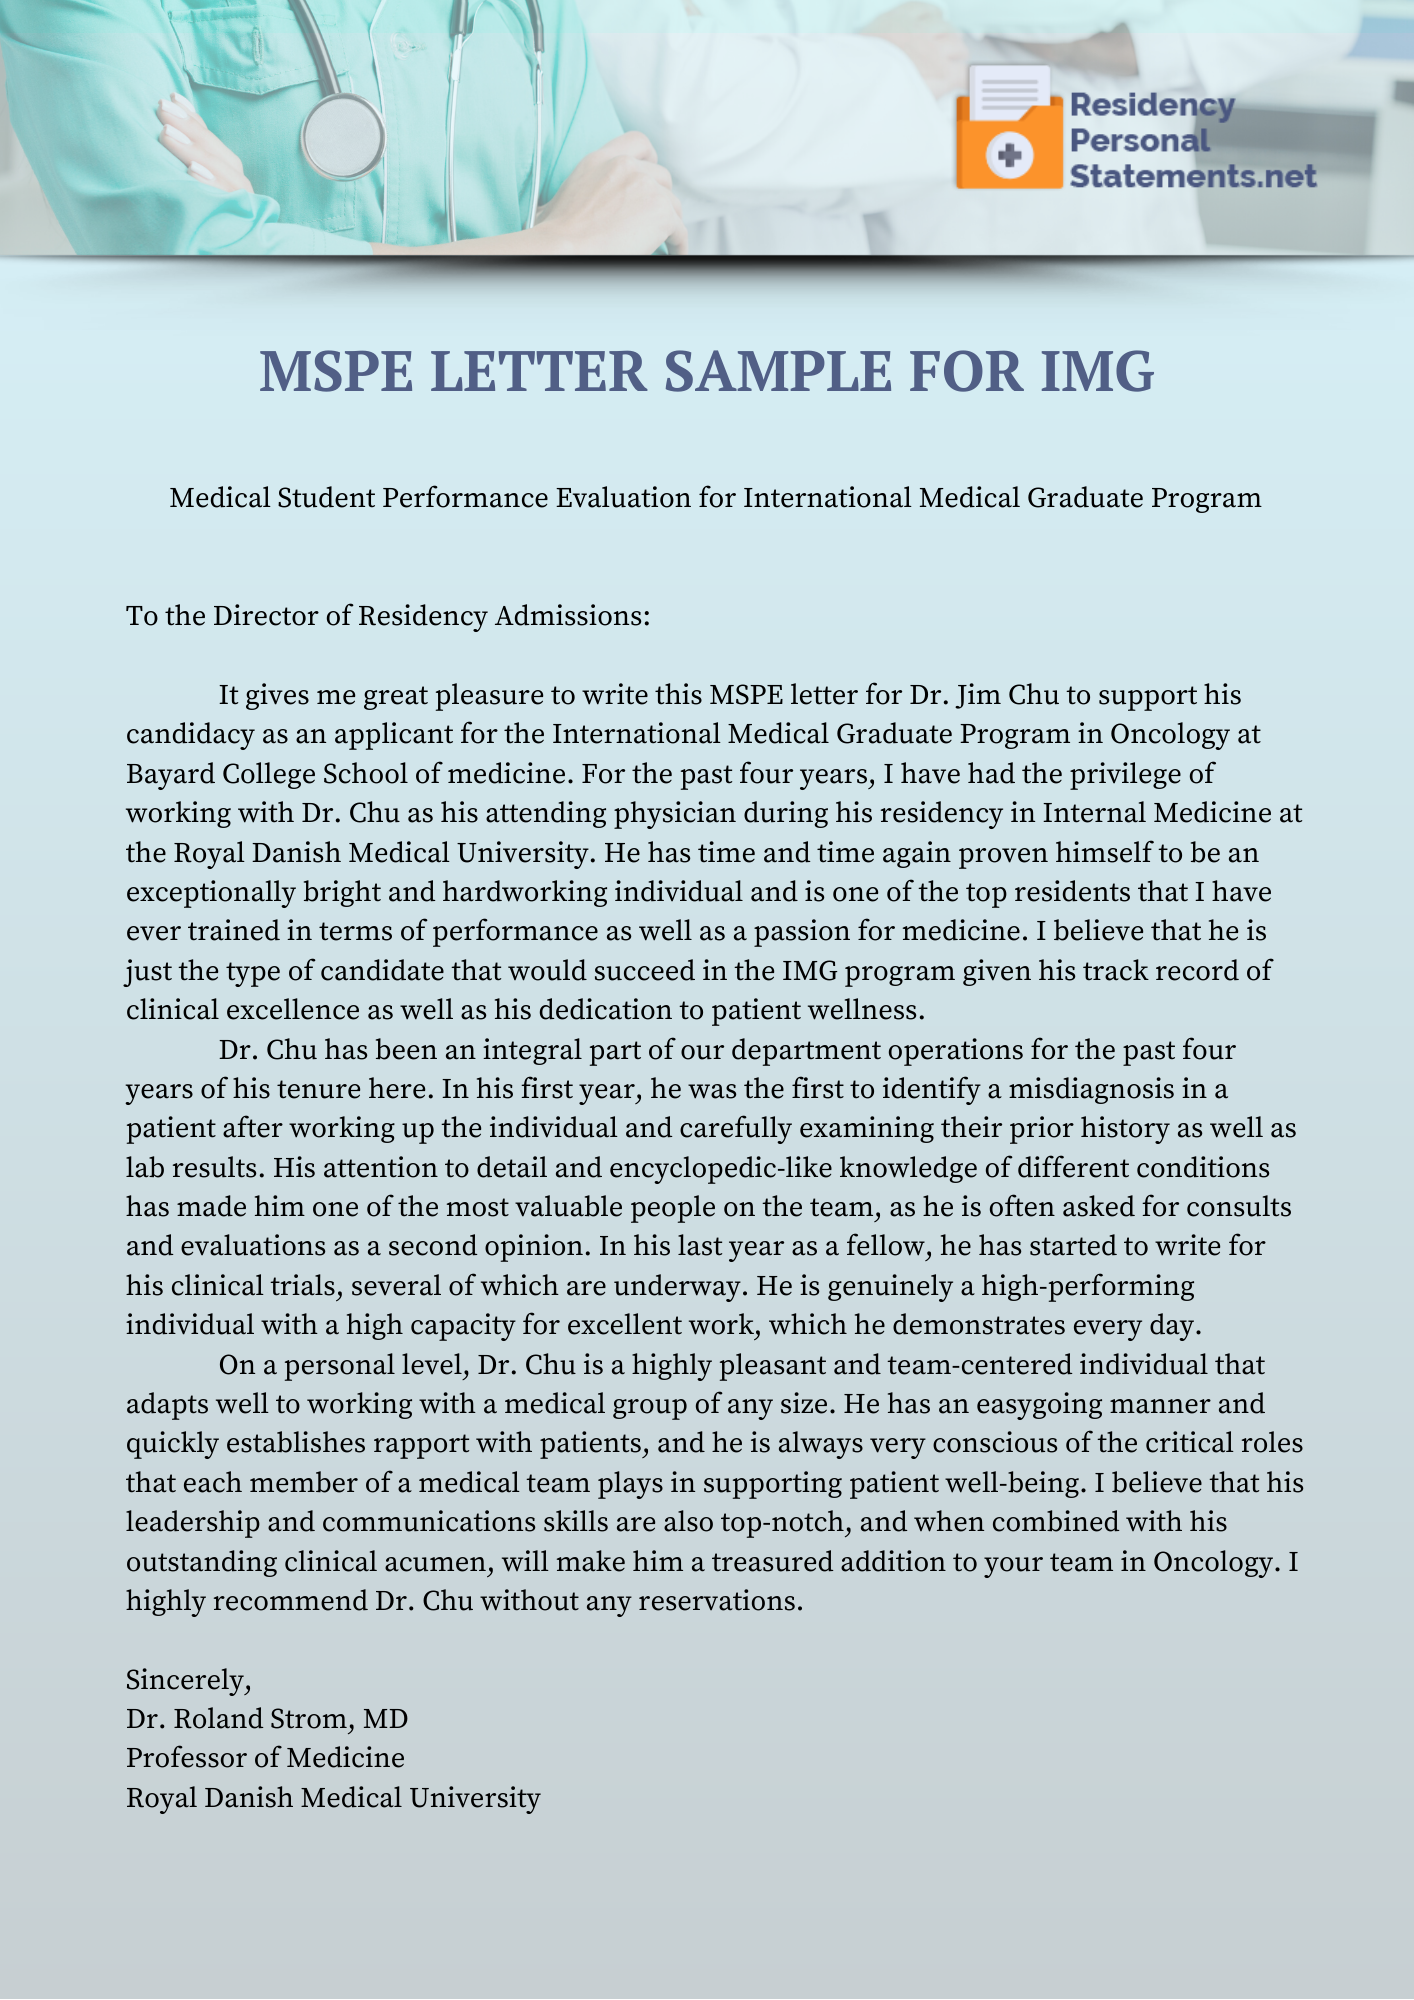 mspe sample for imgs